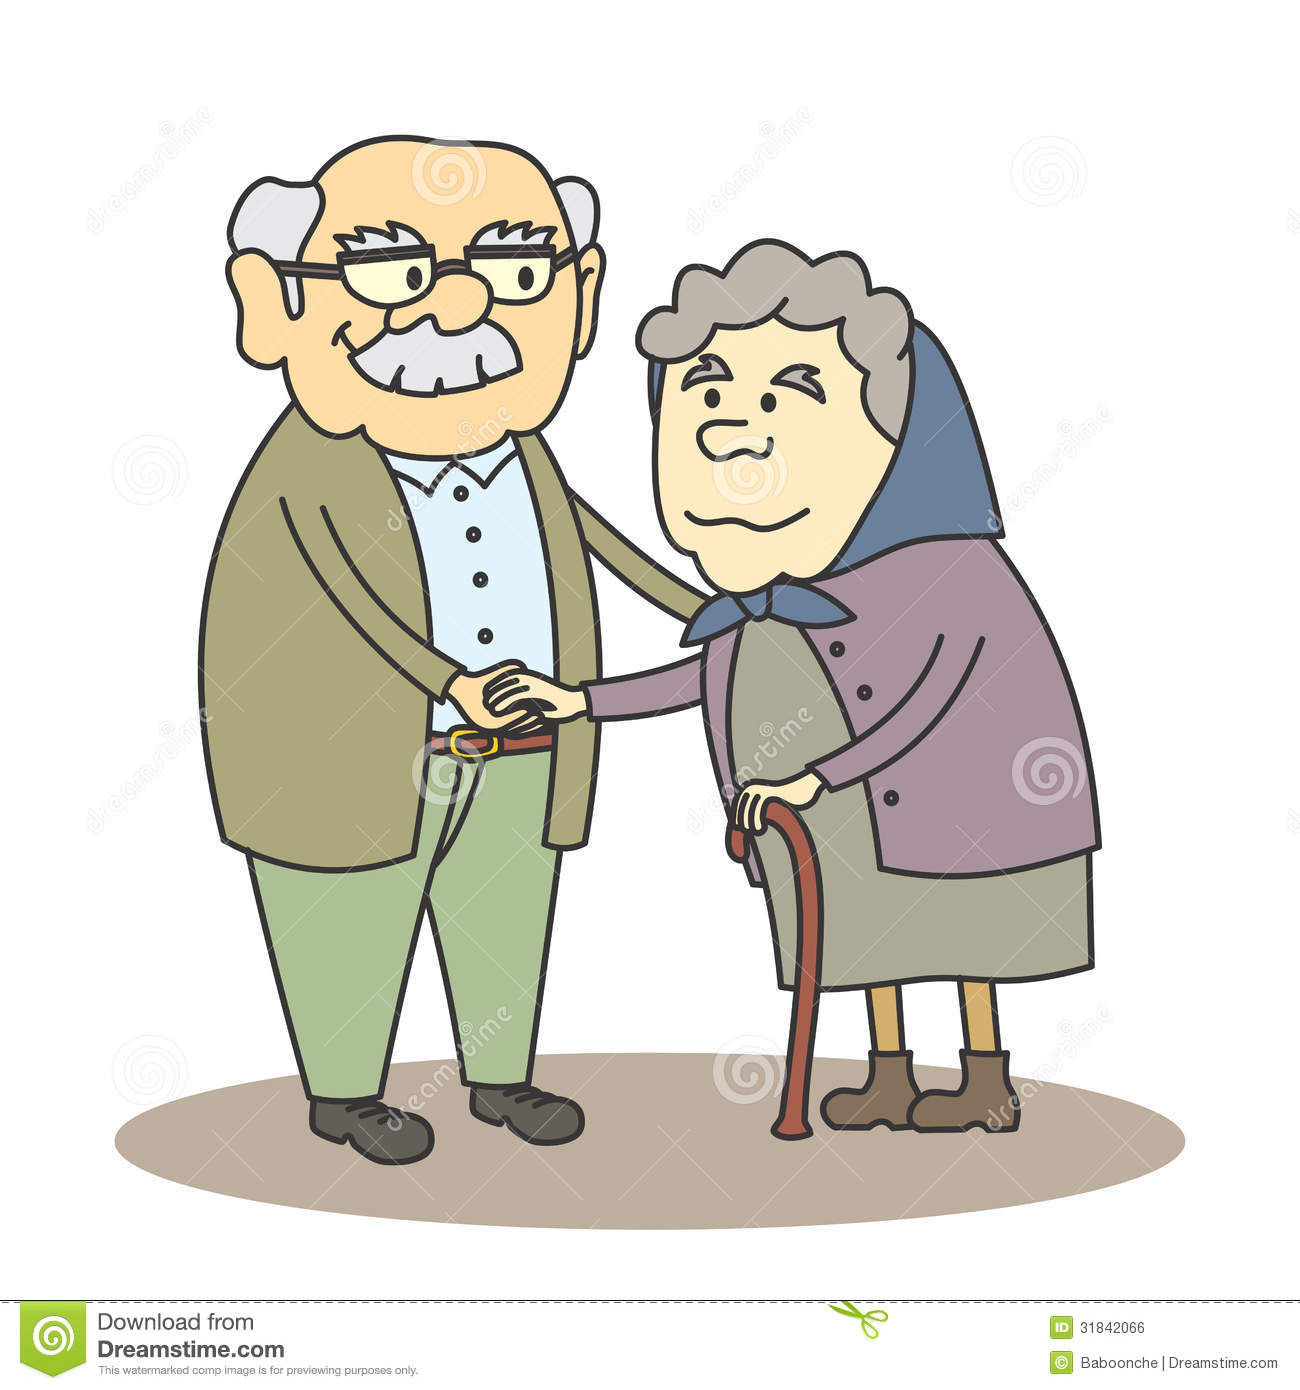 ... Cartoon grandpa grandma stock illustrations, vectors, & clipart